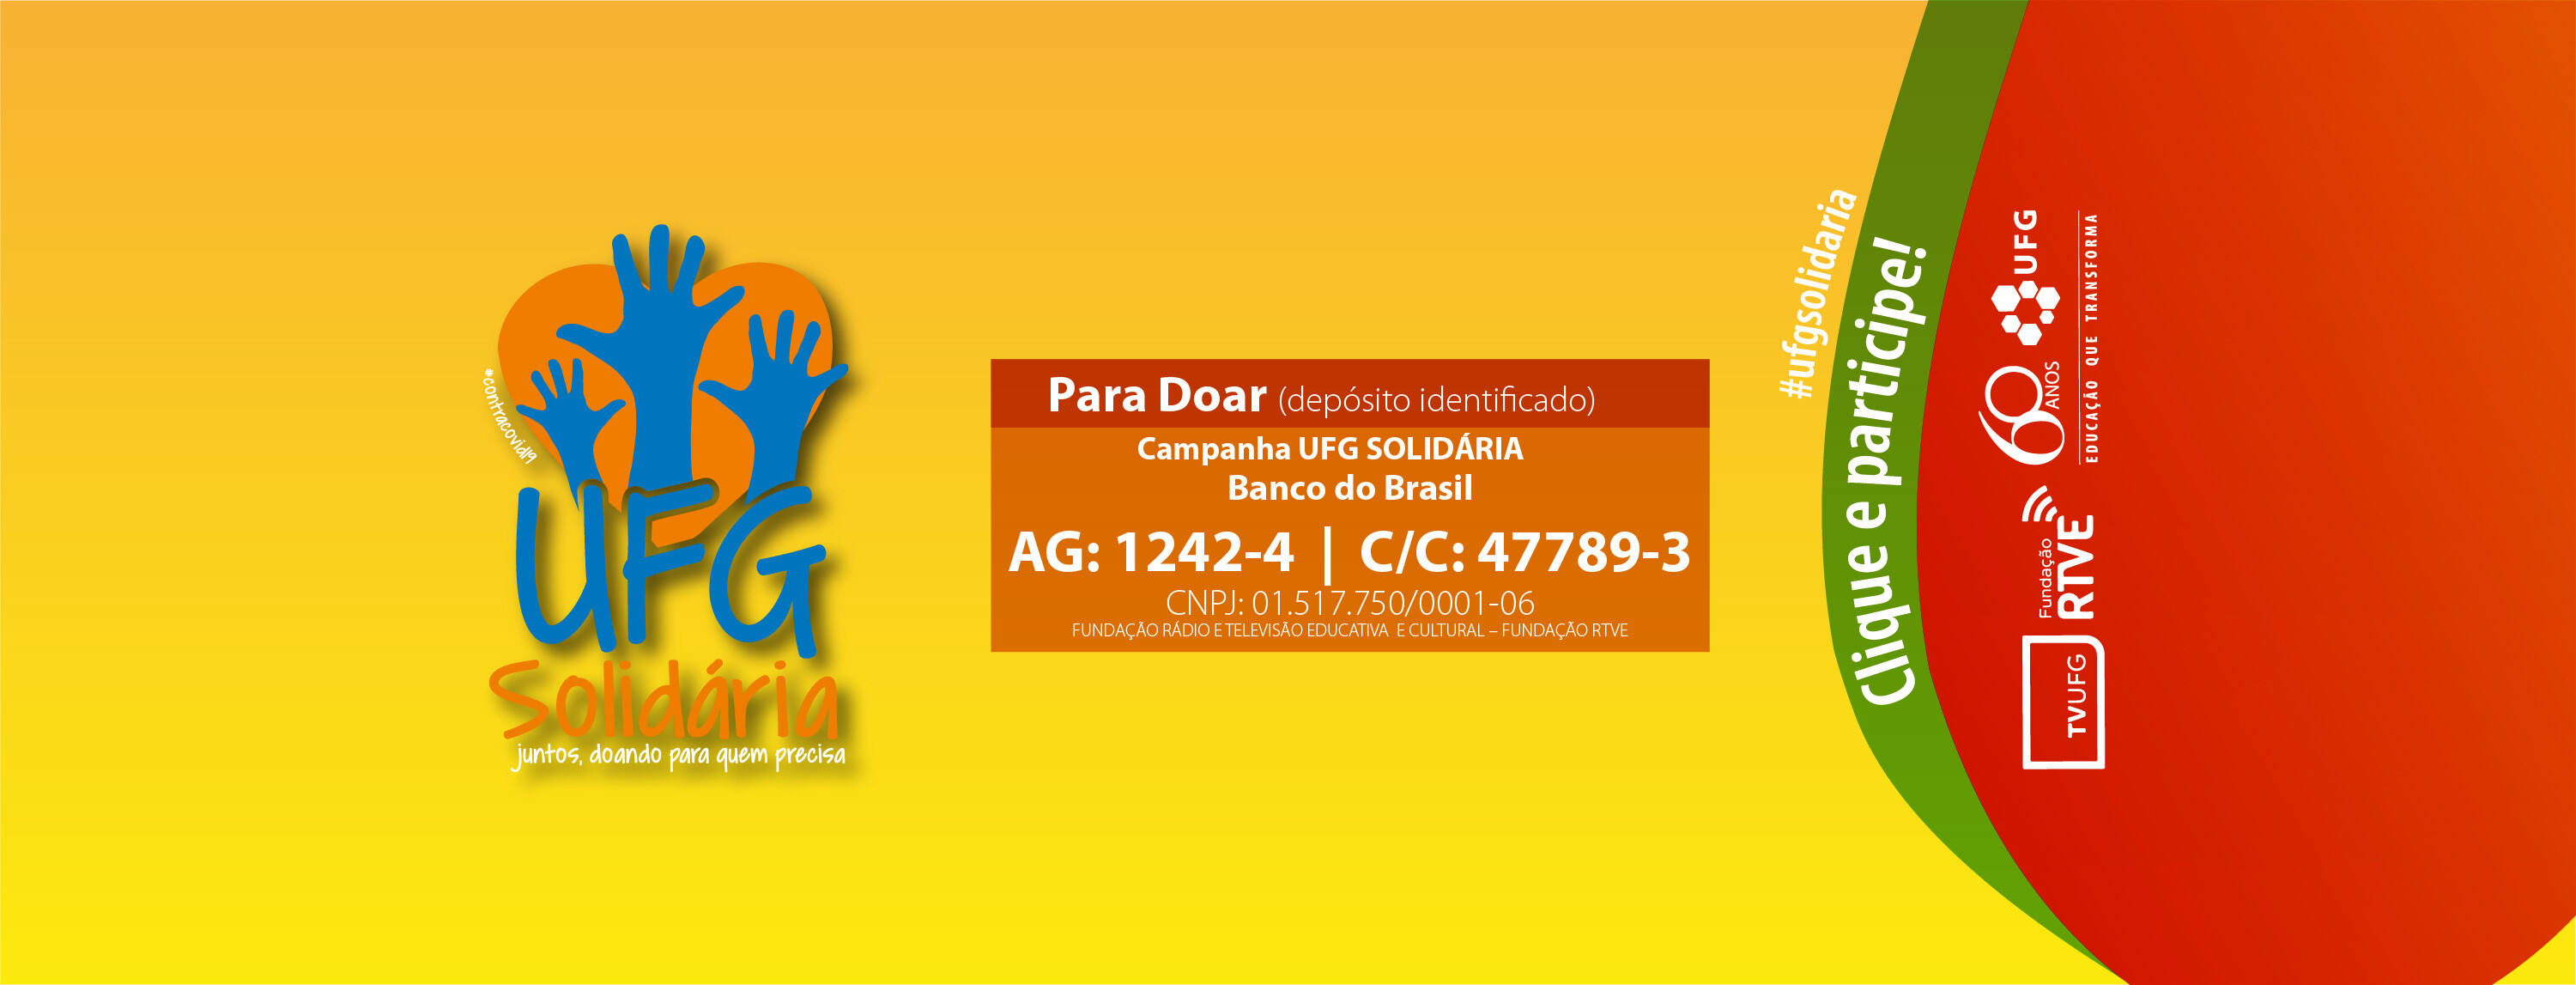 UFG_SOLIDÁRIA_BANNER_SITE